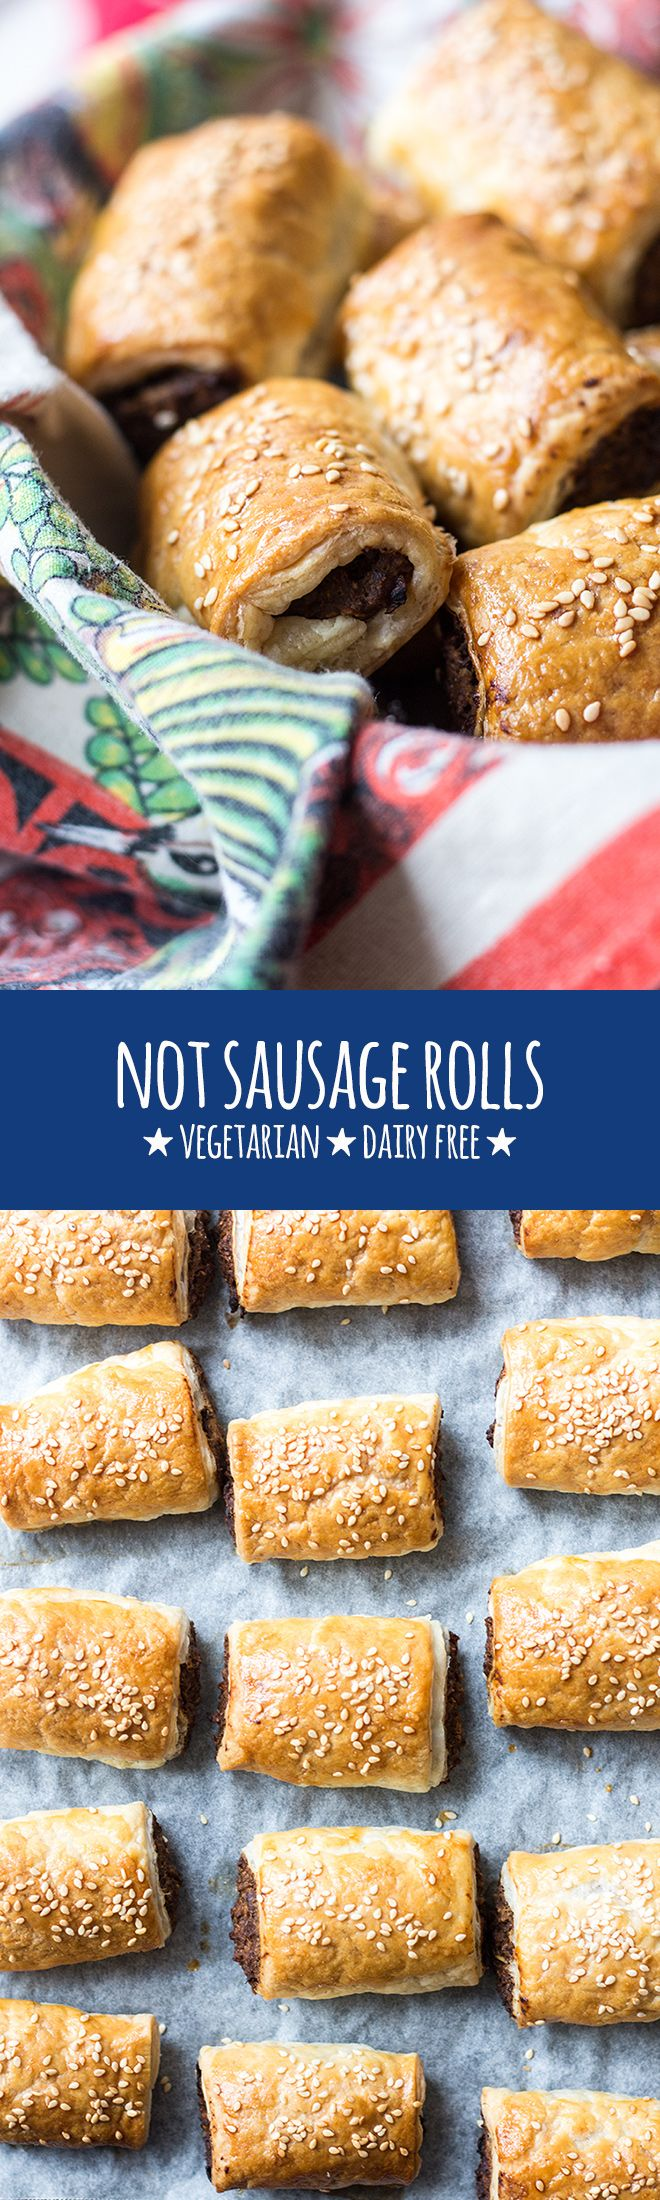 These vegetarian not sausage rolls are perfect finger food for parties, casual gatherings and 'bring a plate' events.  via @quitegoodfood